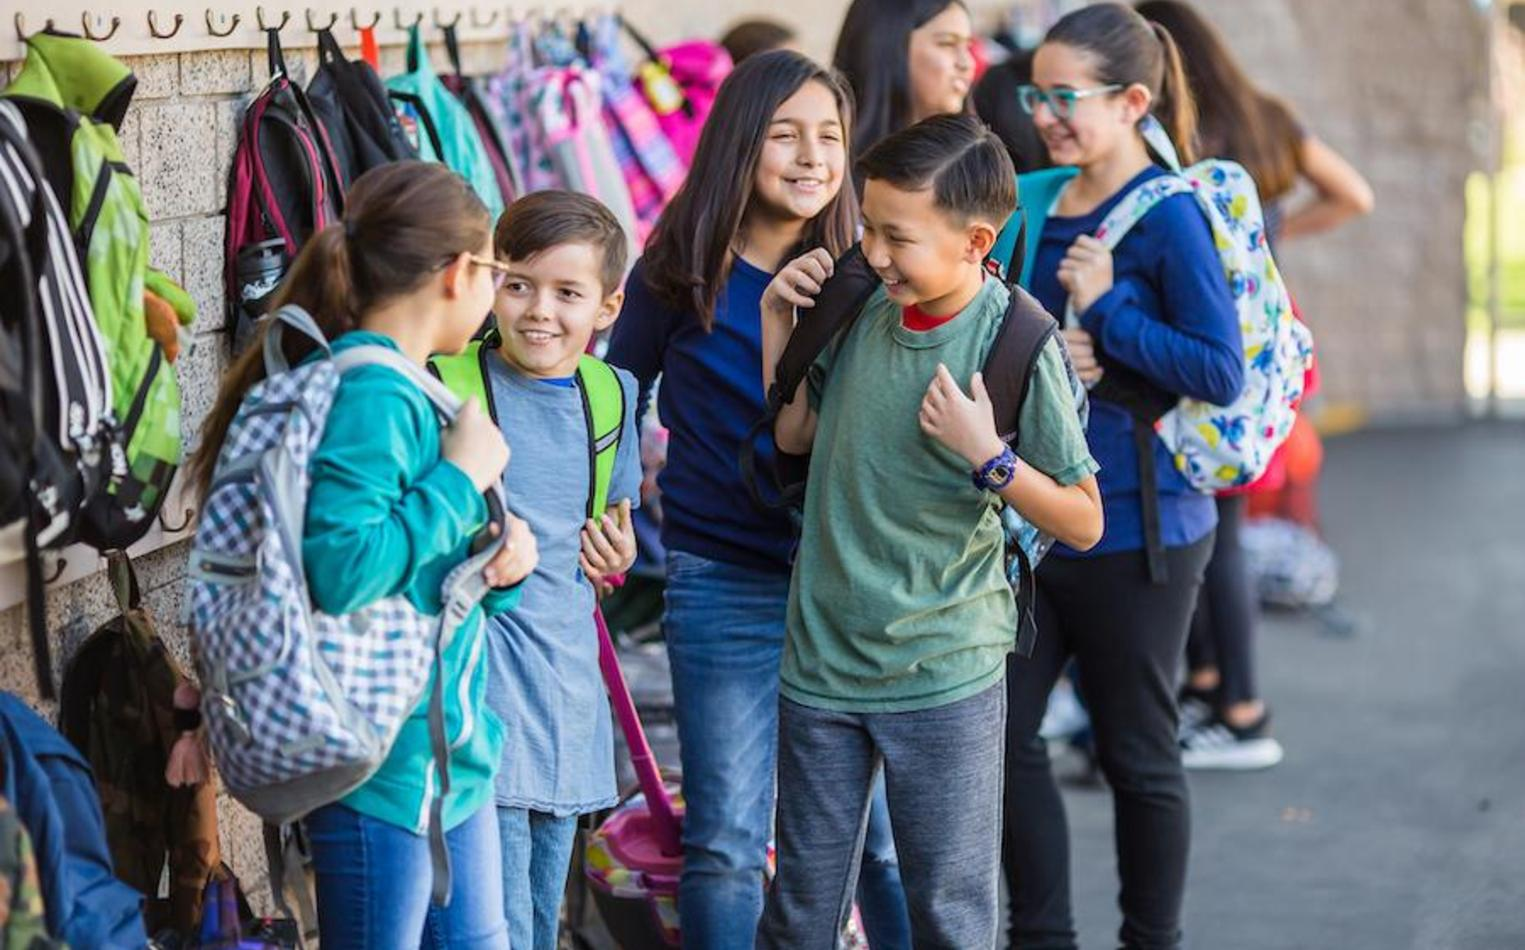 Elementary students getting their backpacks after recess break.